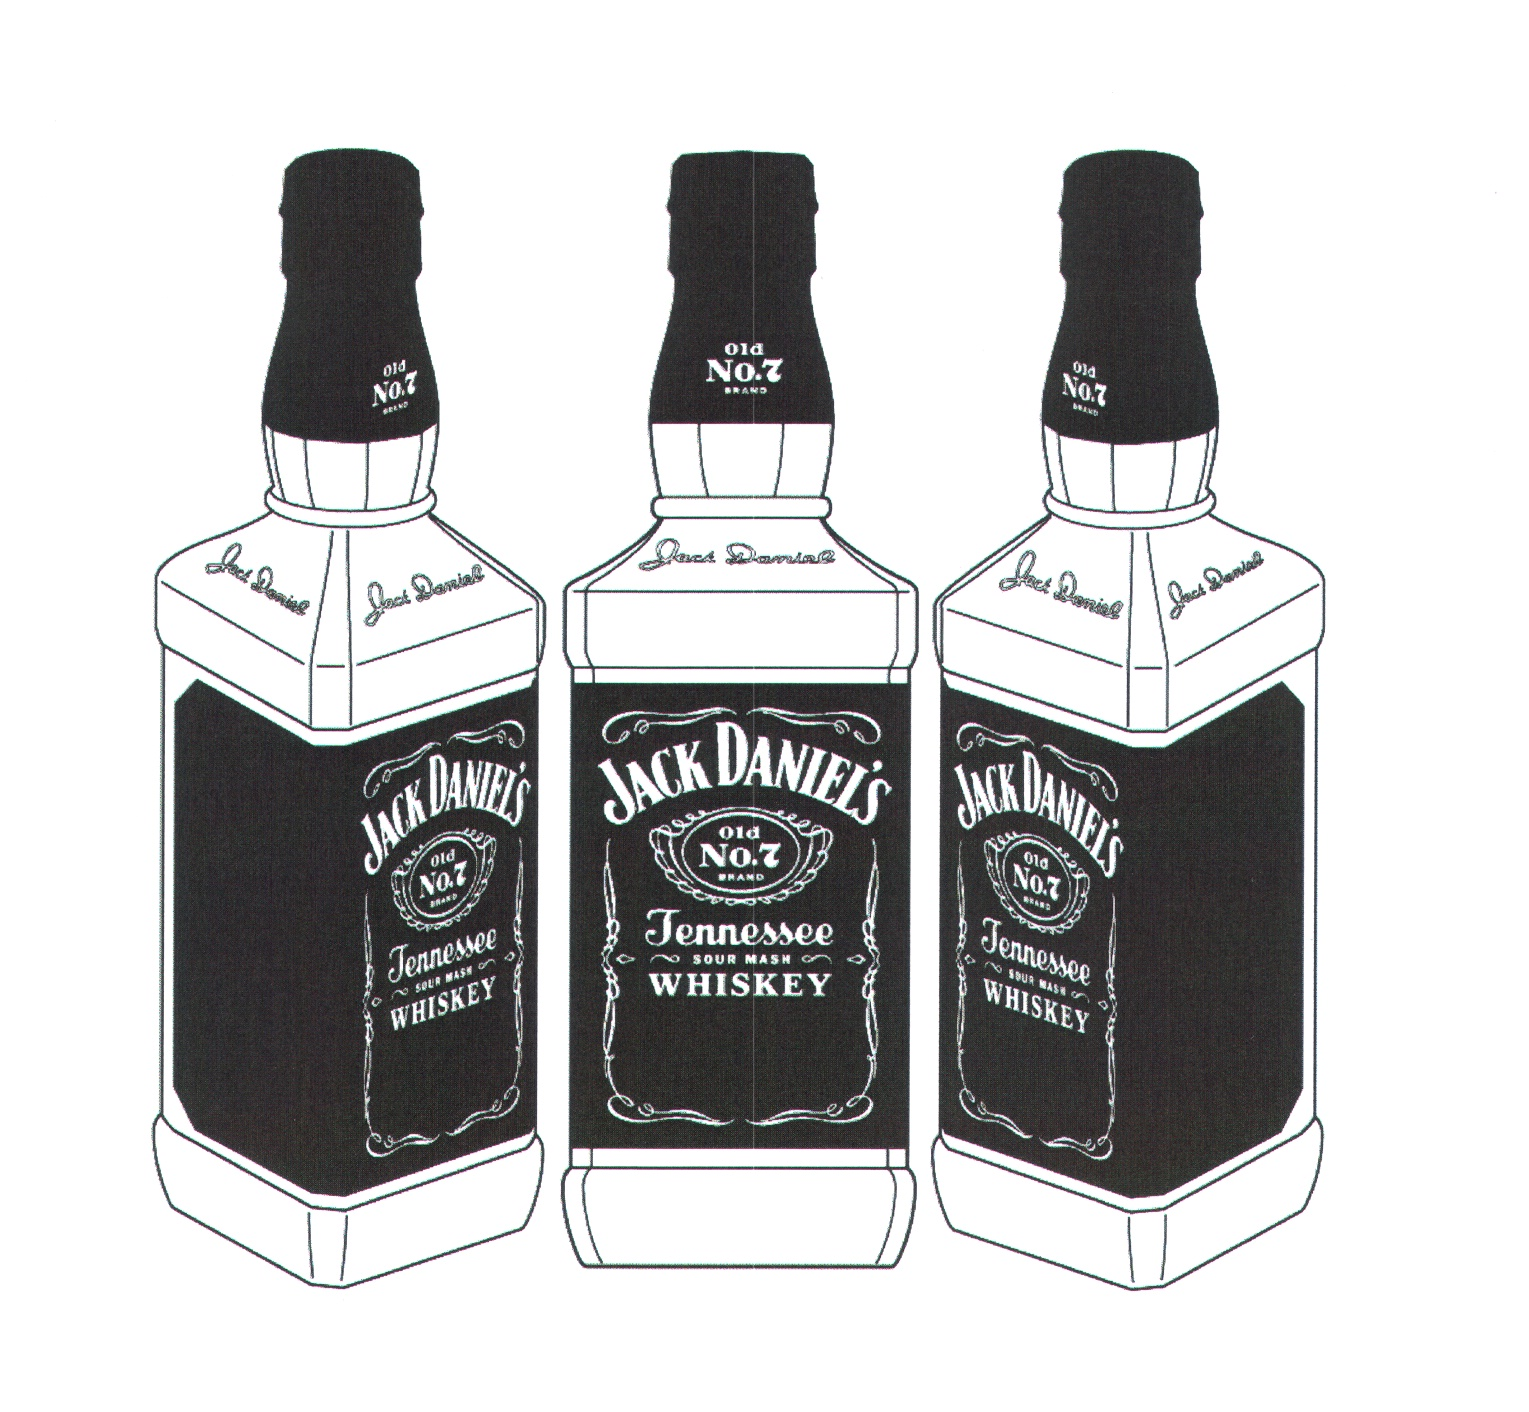 jack daniels bottle drawing - photo #7